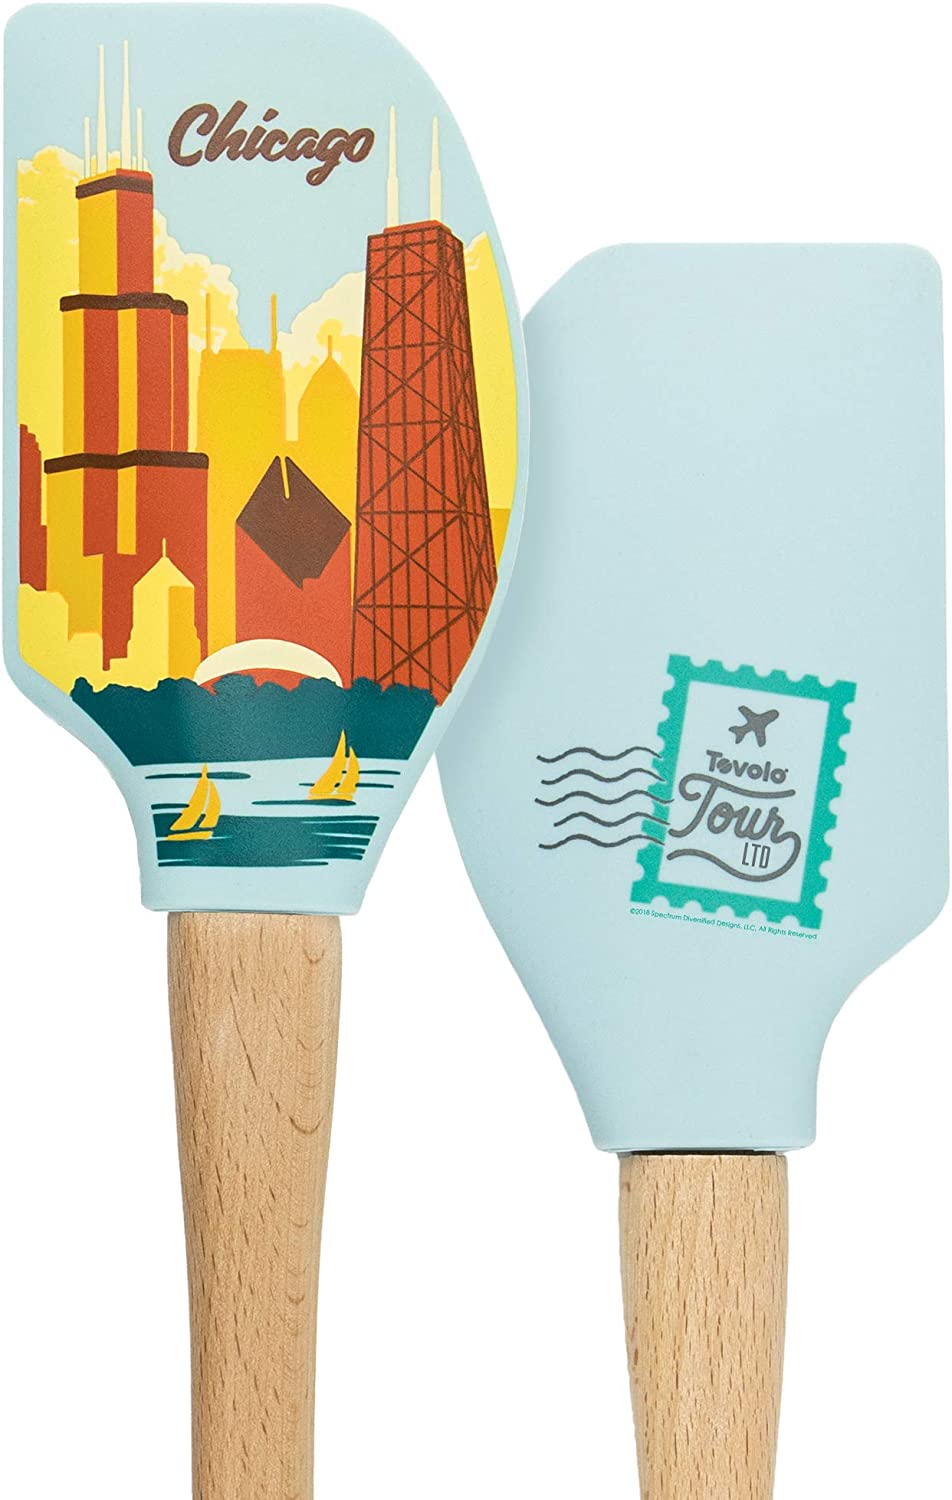 Tovolo Tour Spatula-Chicago Heat Resistant Silicone & Wood Cooking Kitchen Utensils Non-Stick for Baking, Spreading and Mixing Ergonomic, Dishwasher Safe Bakeware BPA Free, 1, Multi